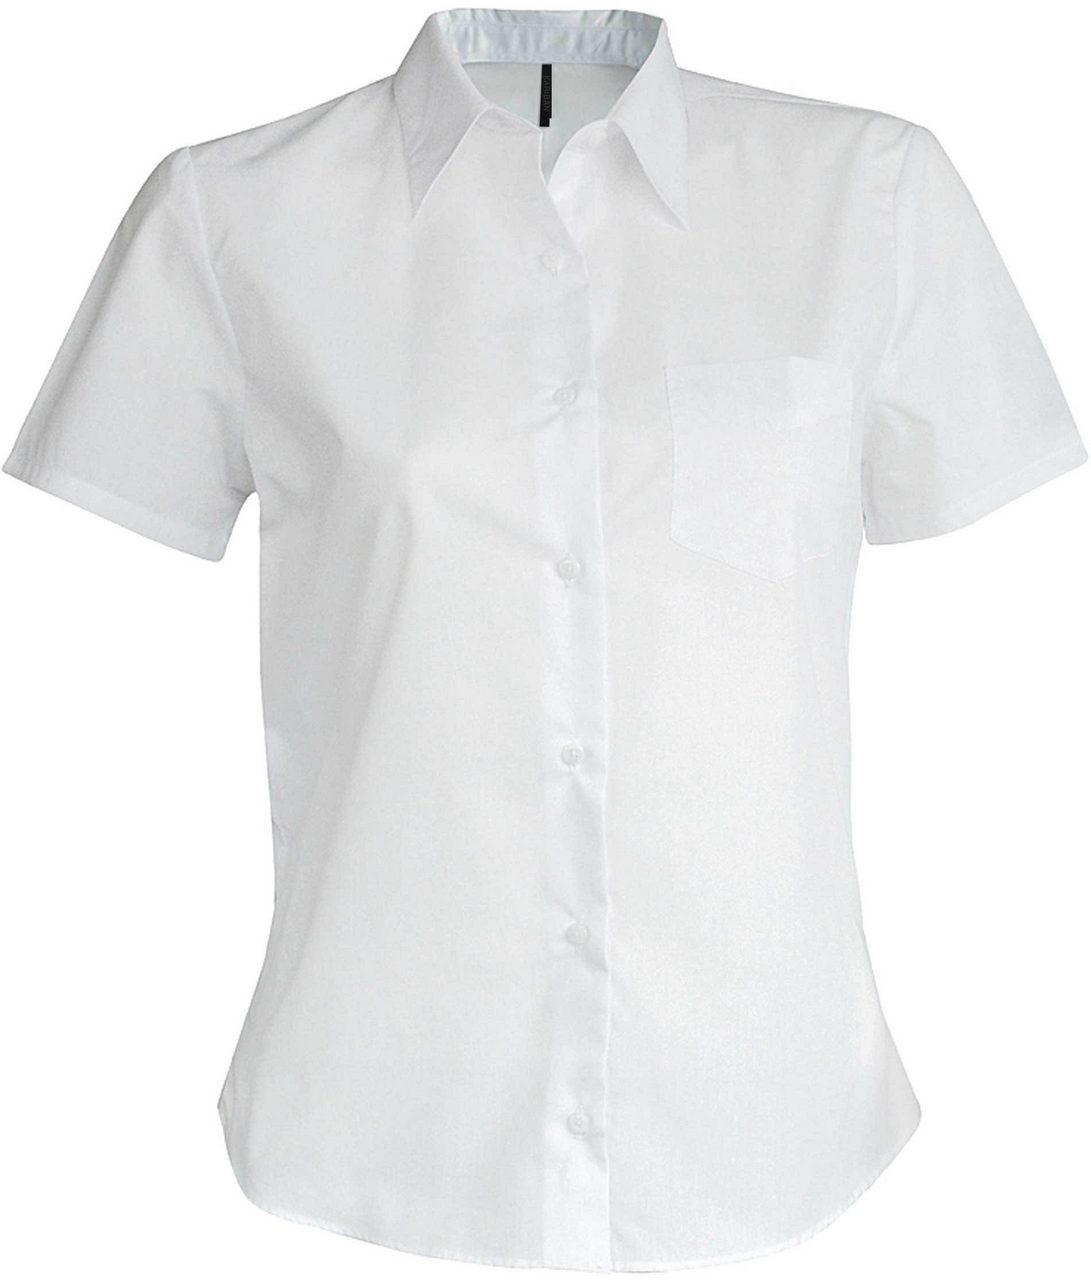 JUDITH > LADIES' SHORT-SLEEVED SHIRT